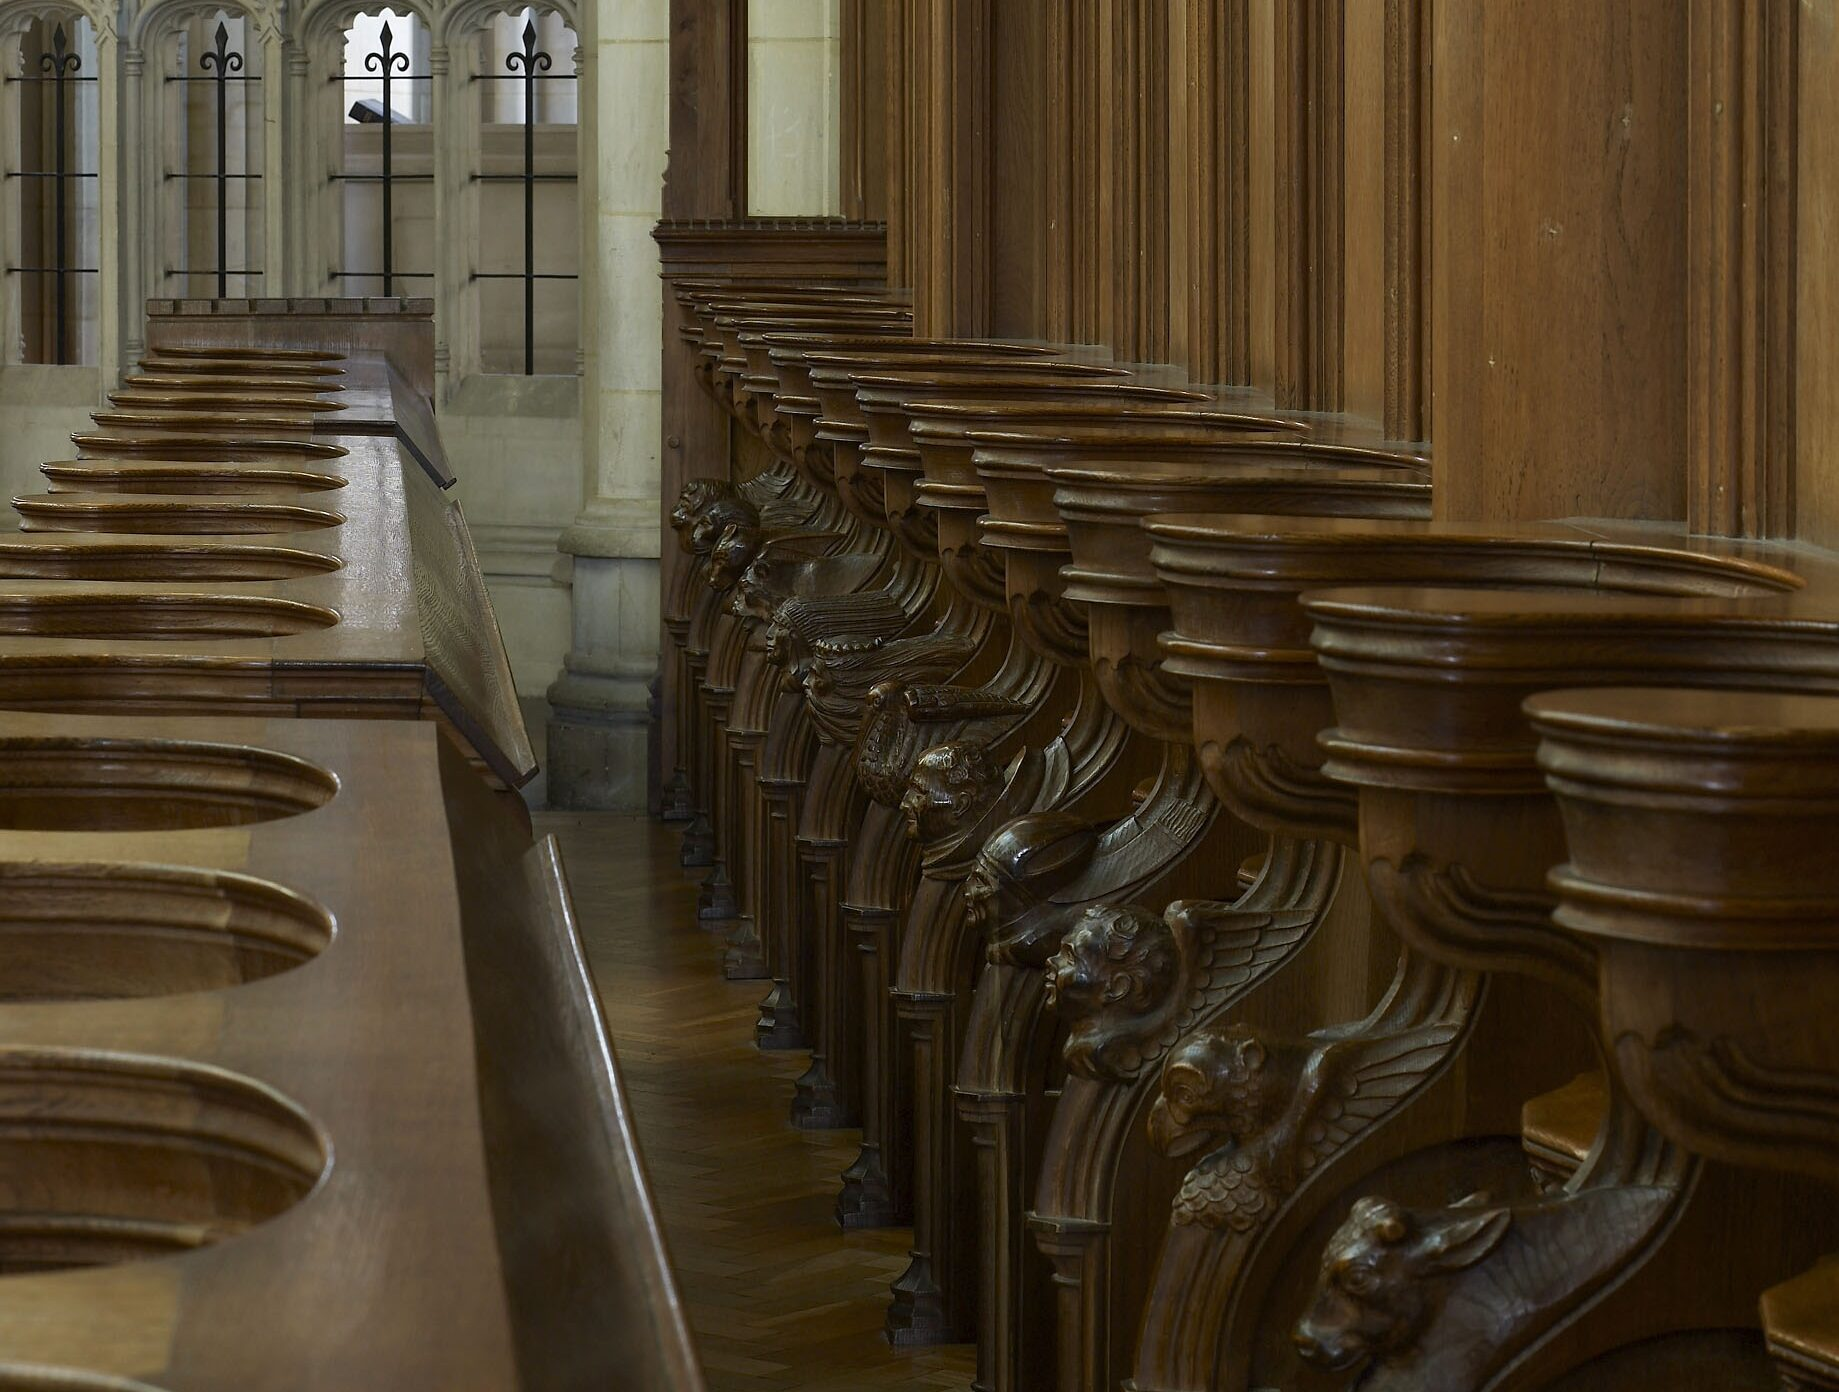 View looking down the choir pews